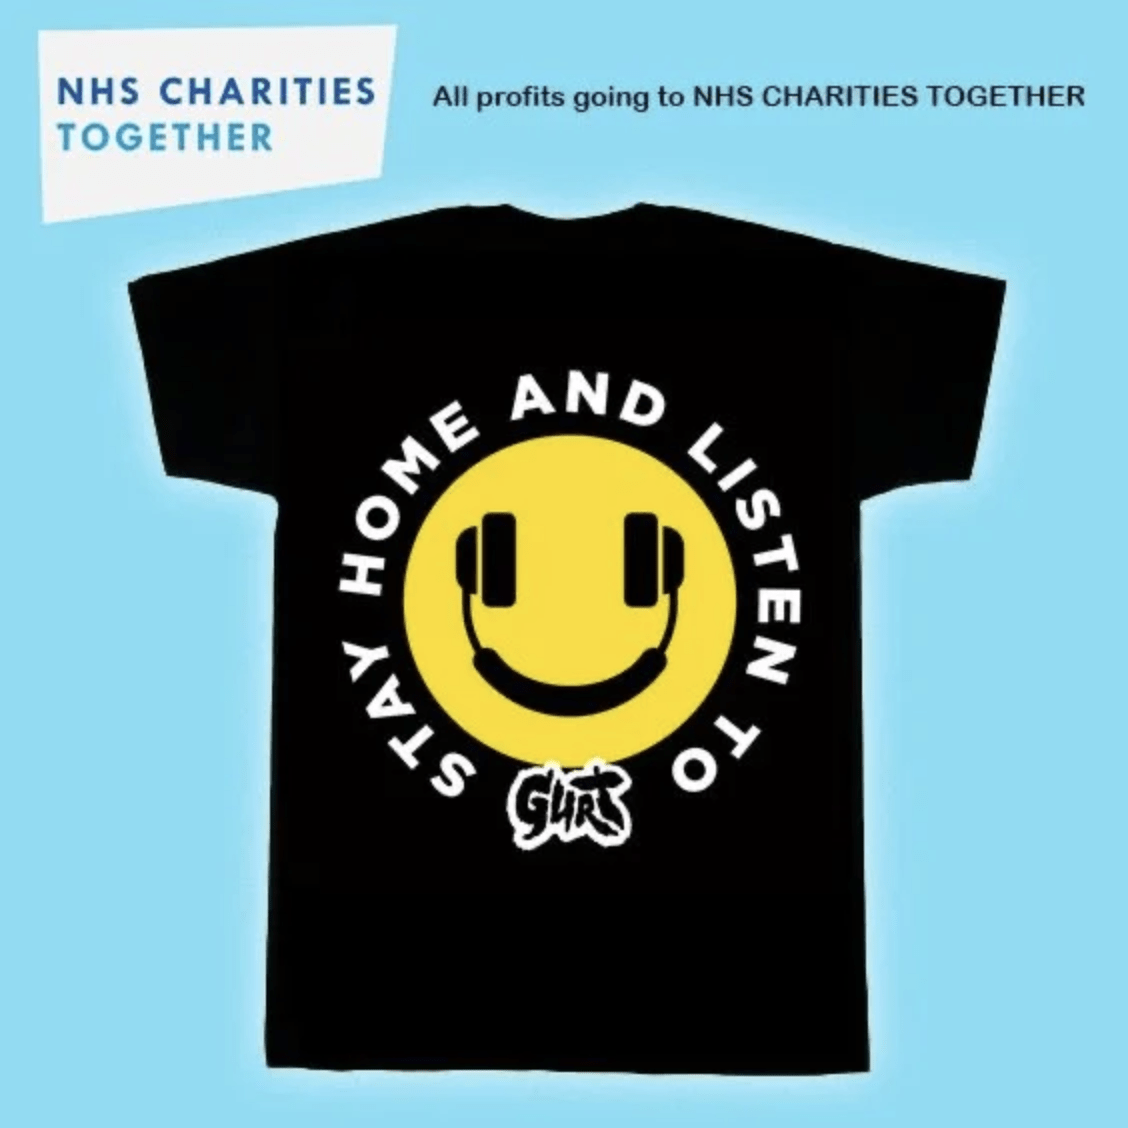 GURT Launch Chairty T-shirt For The NHS